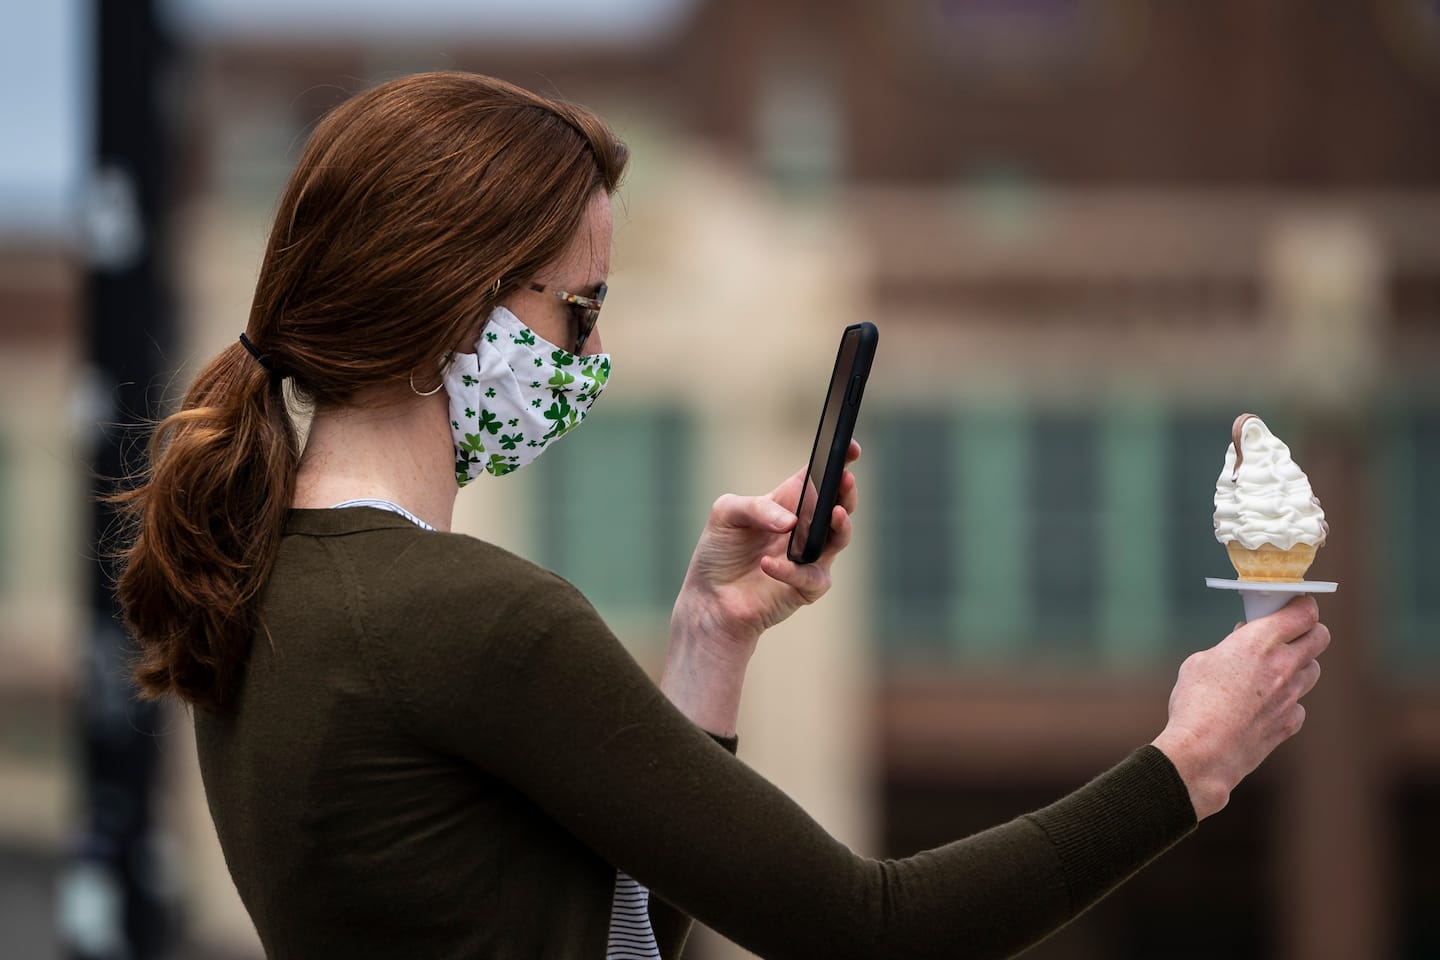 Spate of new research supports wearing masks to control coronavirus spread